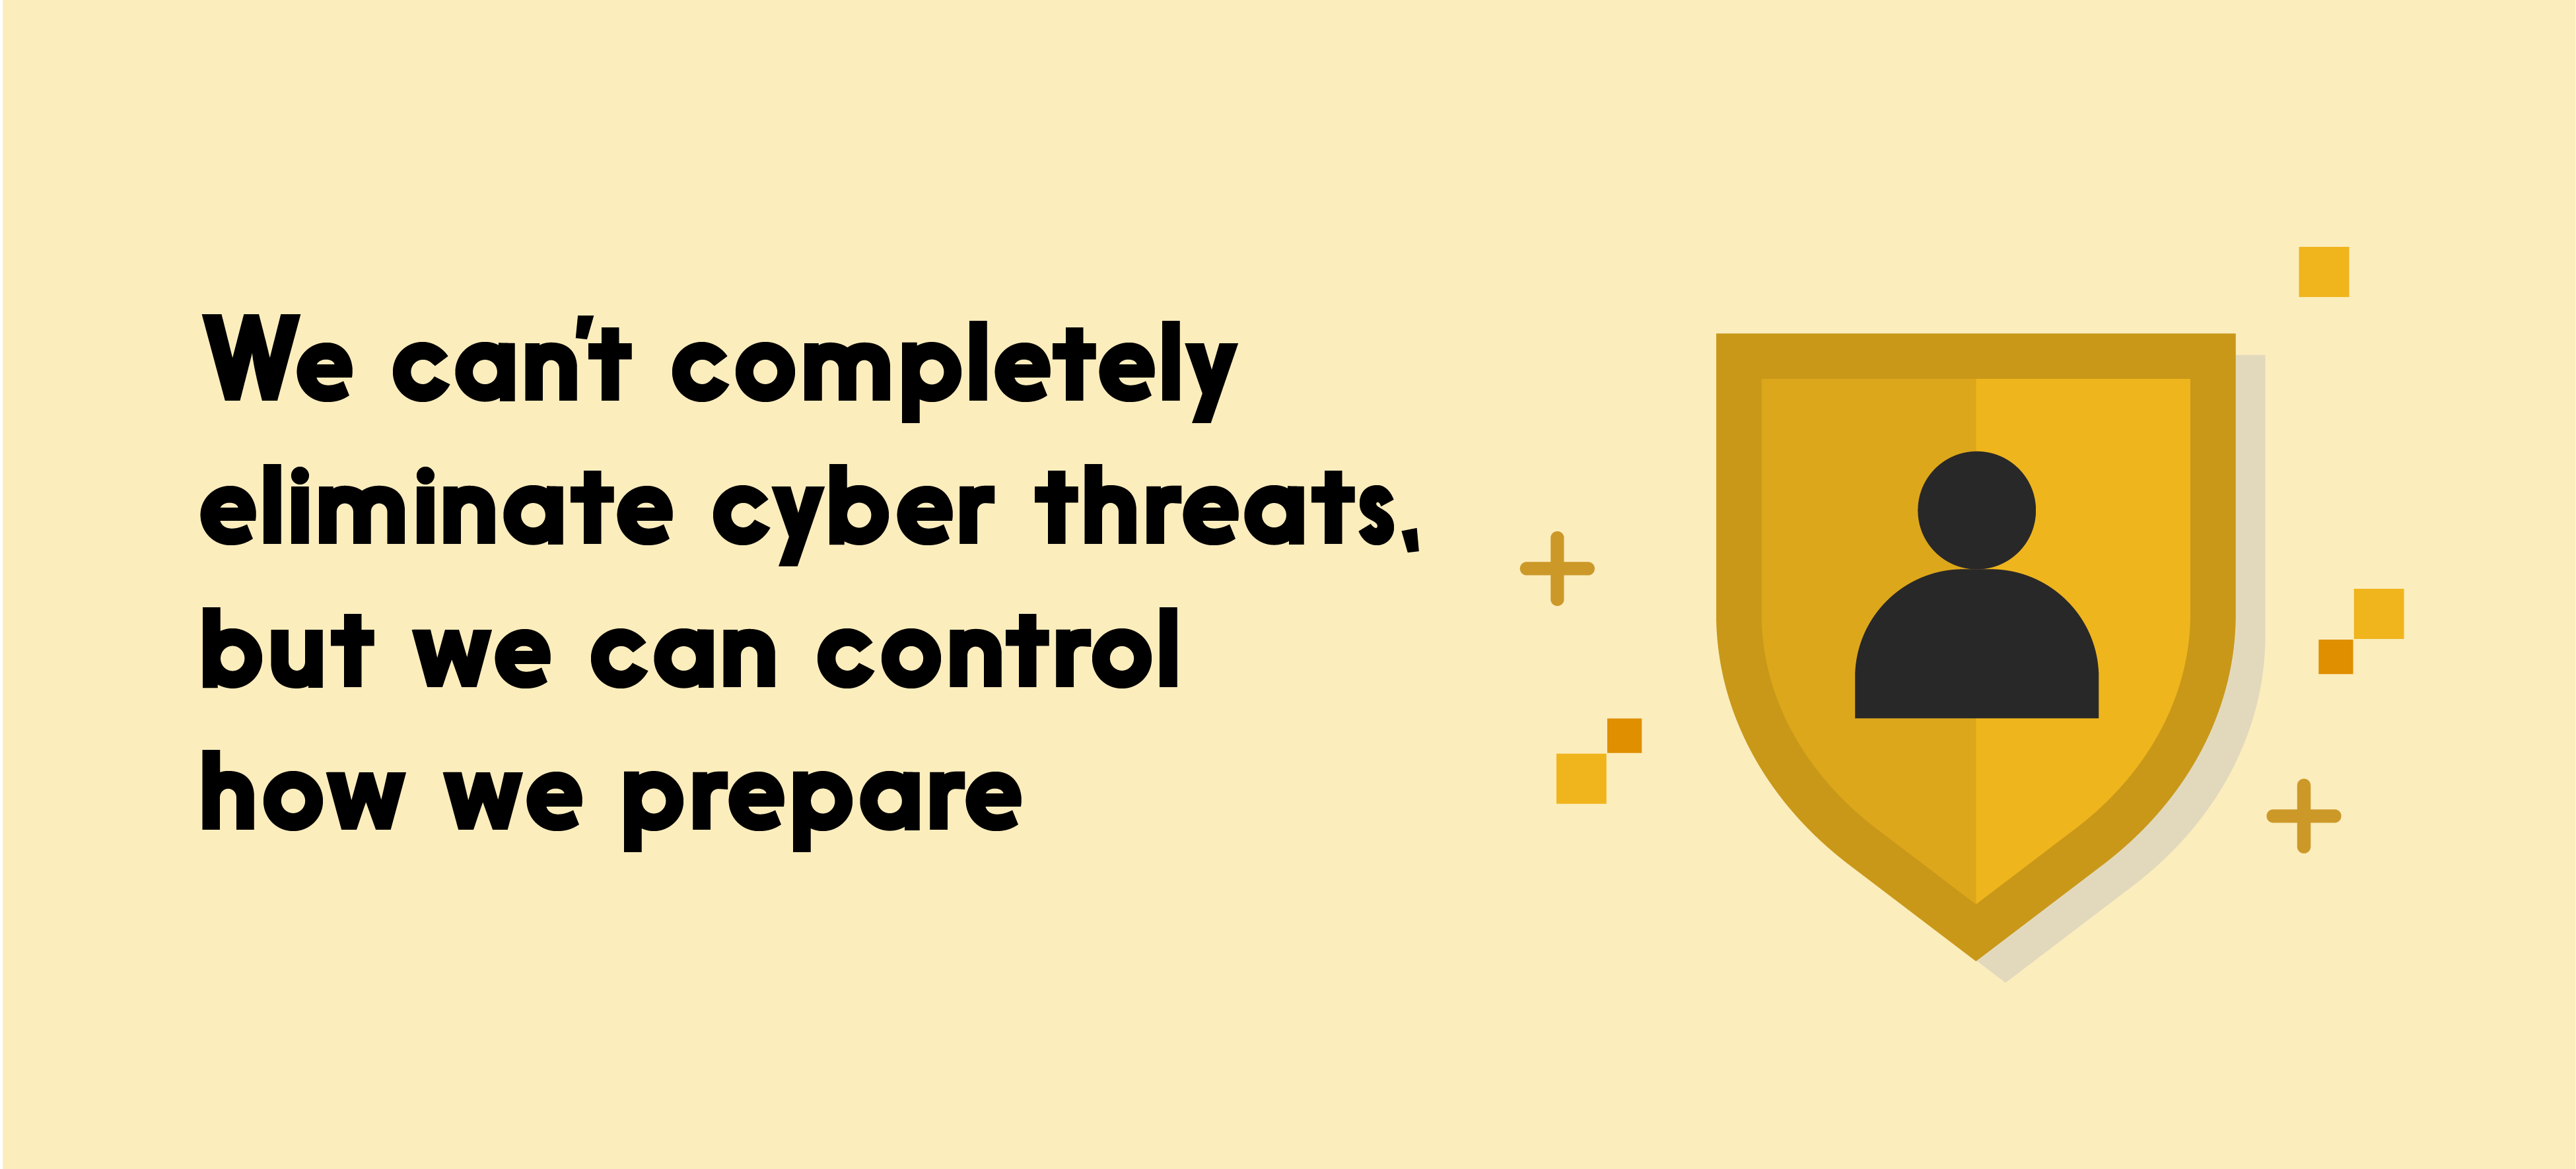 Text reads: We can't completely eliminate cyber threats, but we can control how we prepare